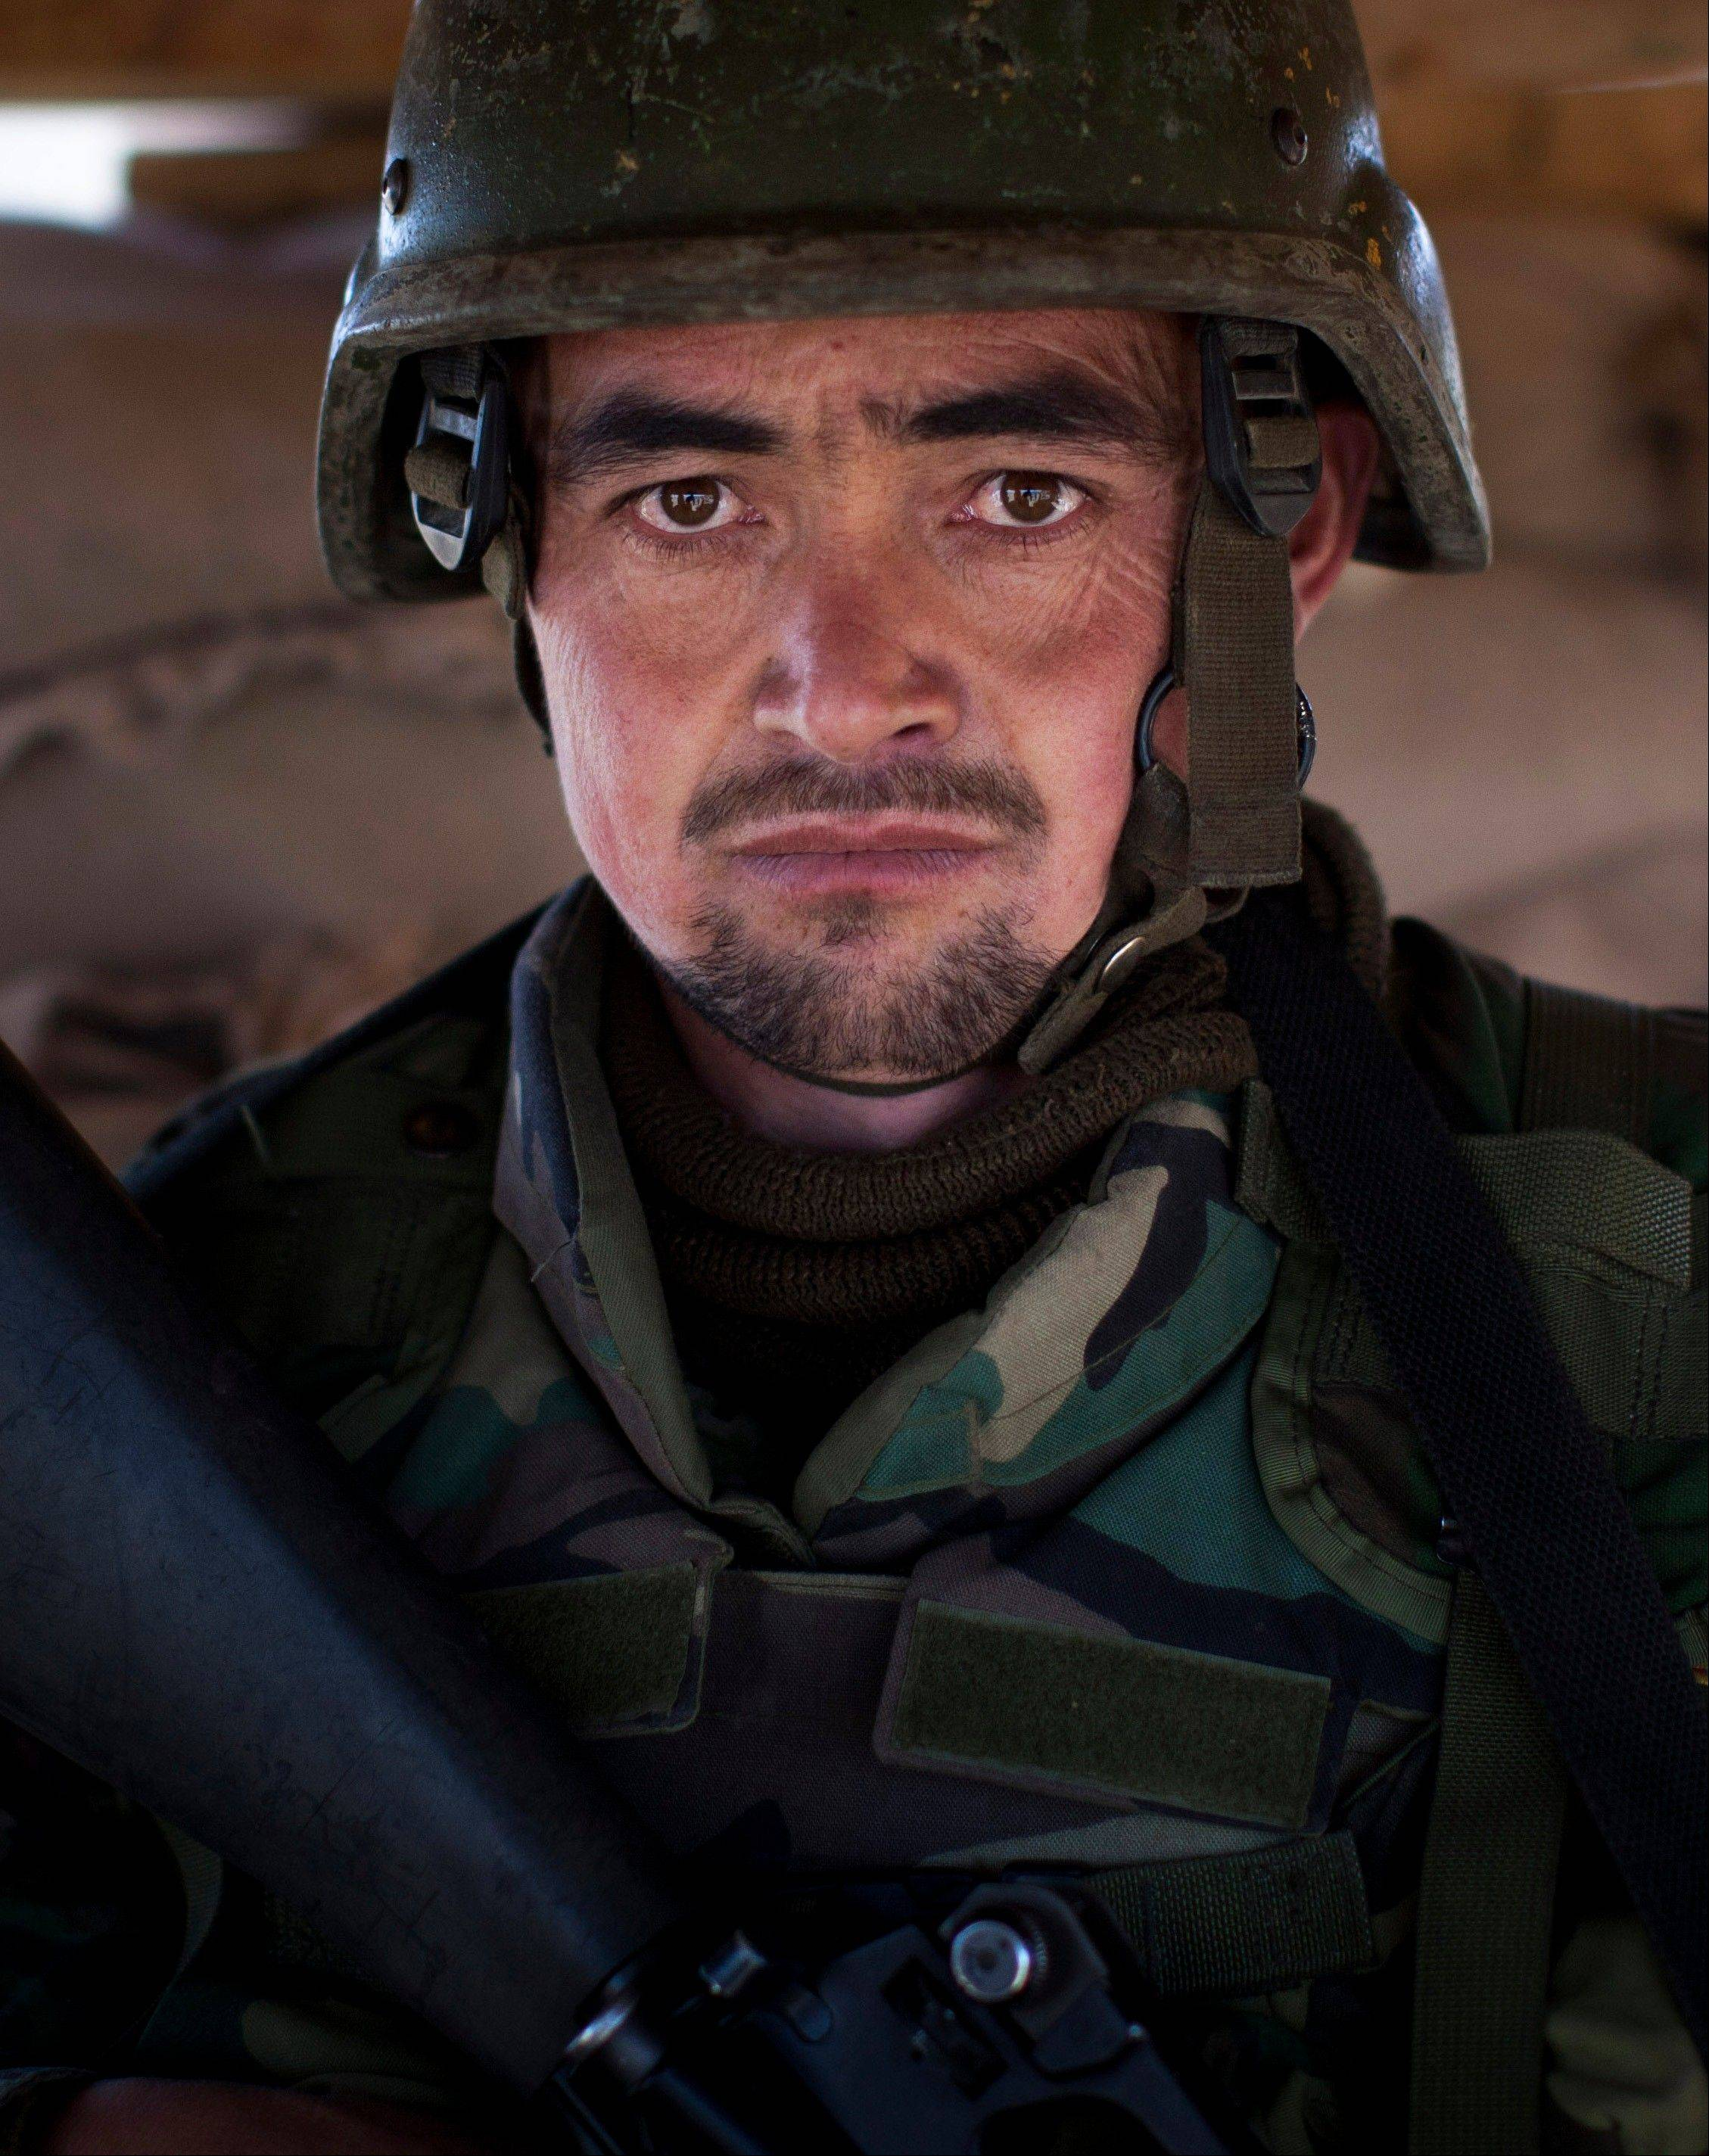 "Afghan National Army soldier Sgt. Abdul Bashir, 23, poses Tuesday for a picture at the Chinari outpost in Logar province, east Afghanistan, wearing his unit's single helmet. At 23, Bashir is a veteran. One of 15 children, he joined up four years ago ""to serve my country."" He accuses Iran and Pakistan of interfering in his troubled homeland but believes Afghanistan will have a better chance at peace after international forces leave. He longs for ""a country that is peaceful and can develop and where a soldier all alone can go anywhere in the country without feeling any danger."""